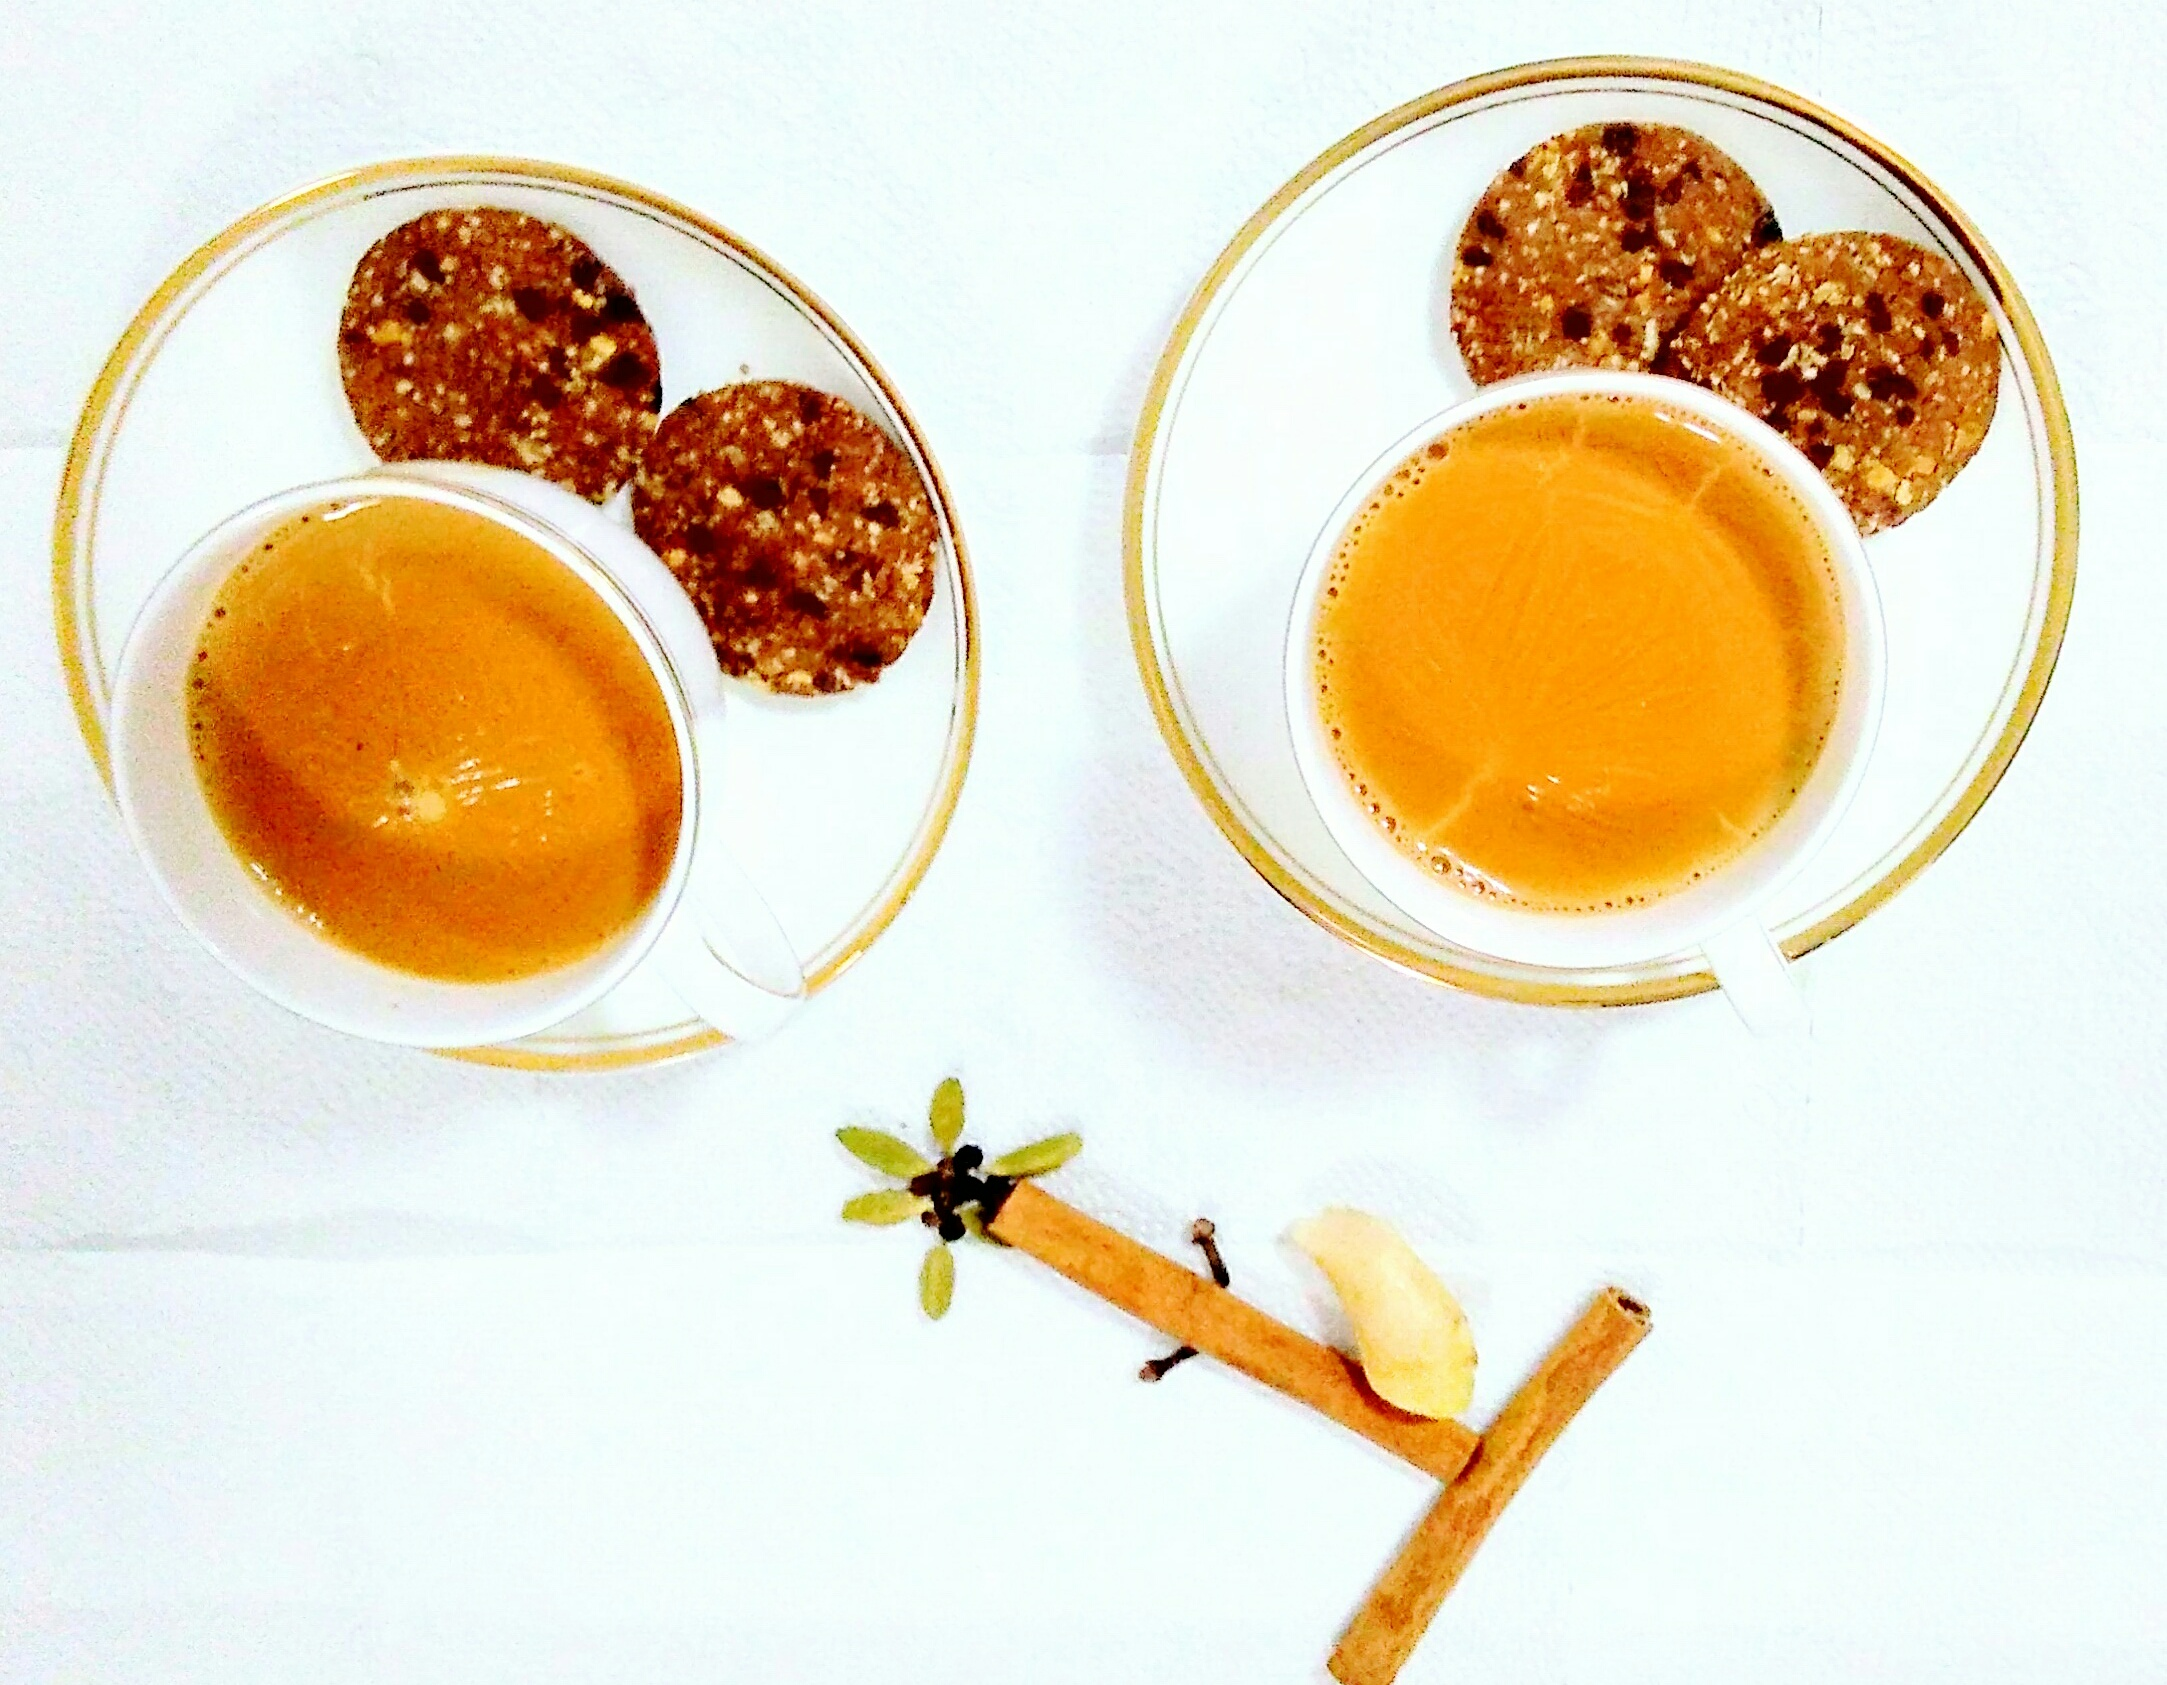 Masala Chai (spiced milk tea)